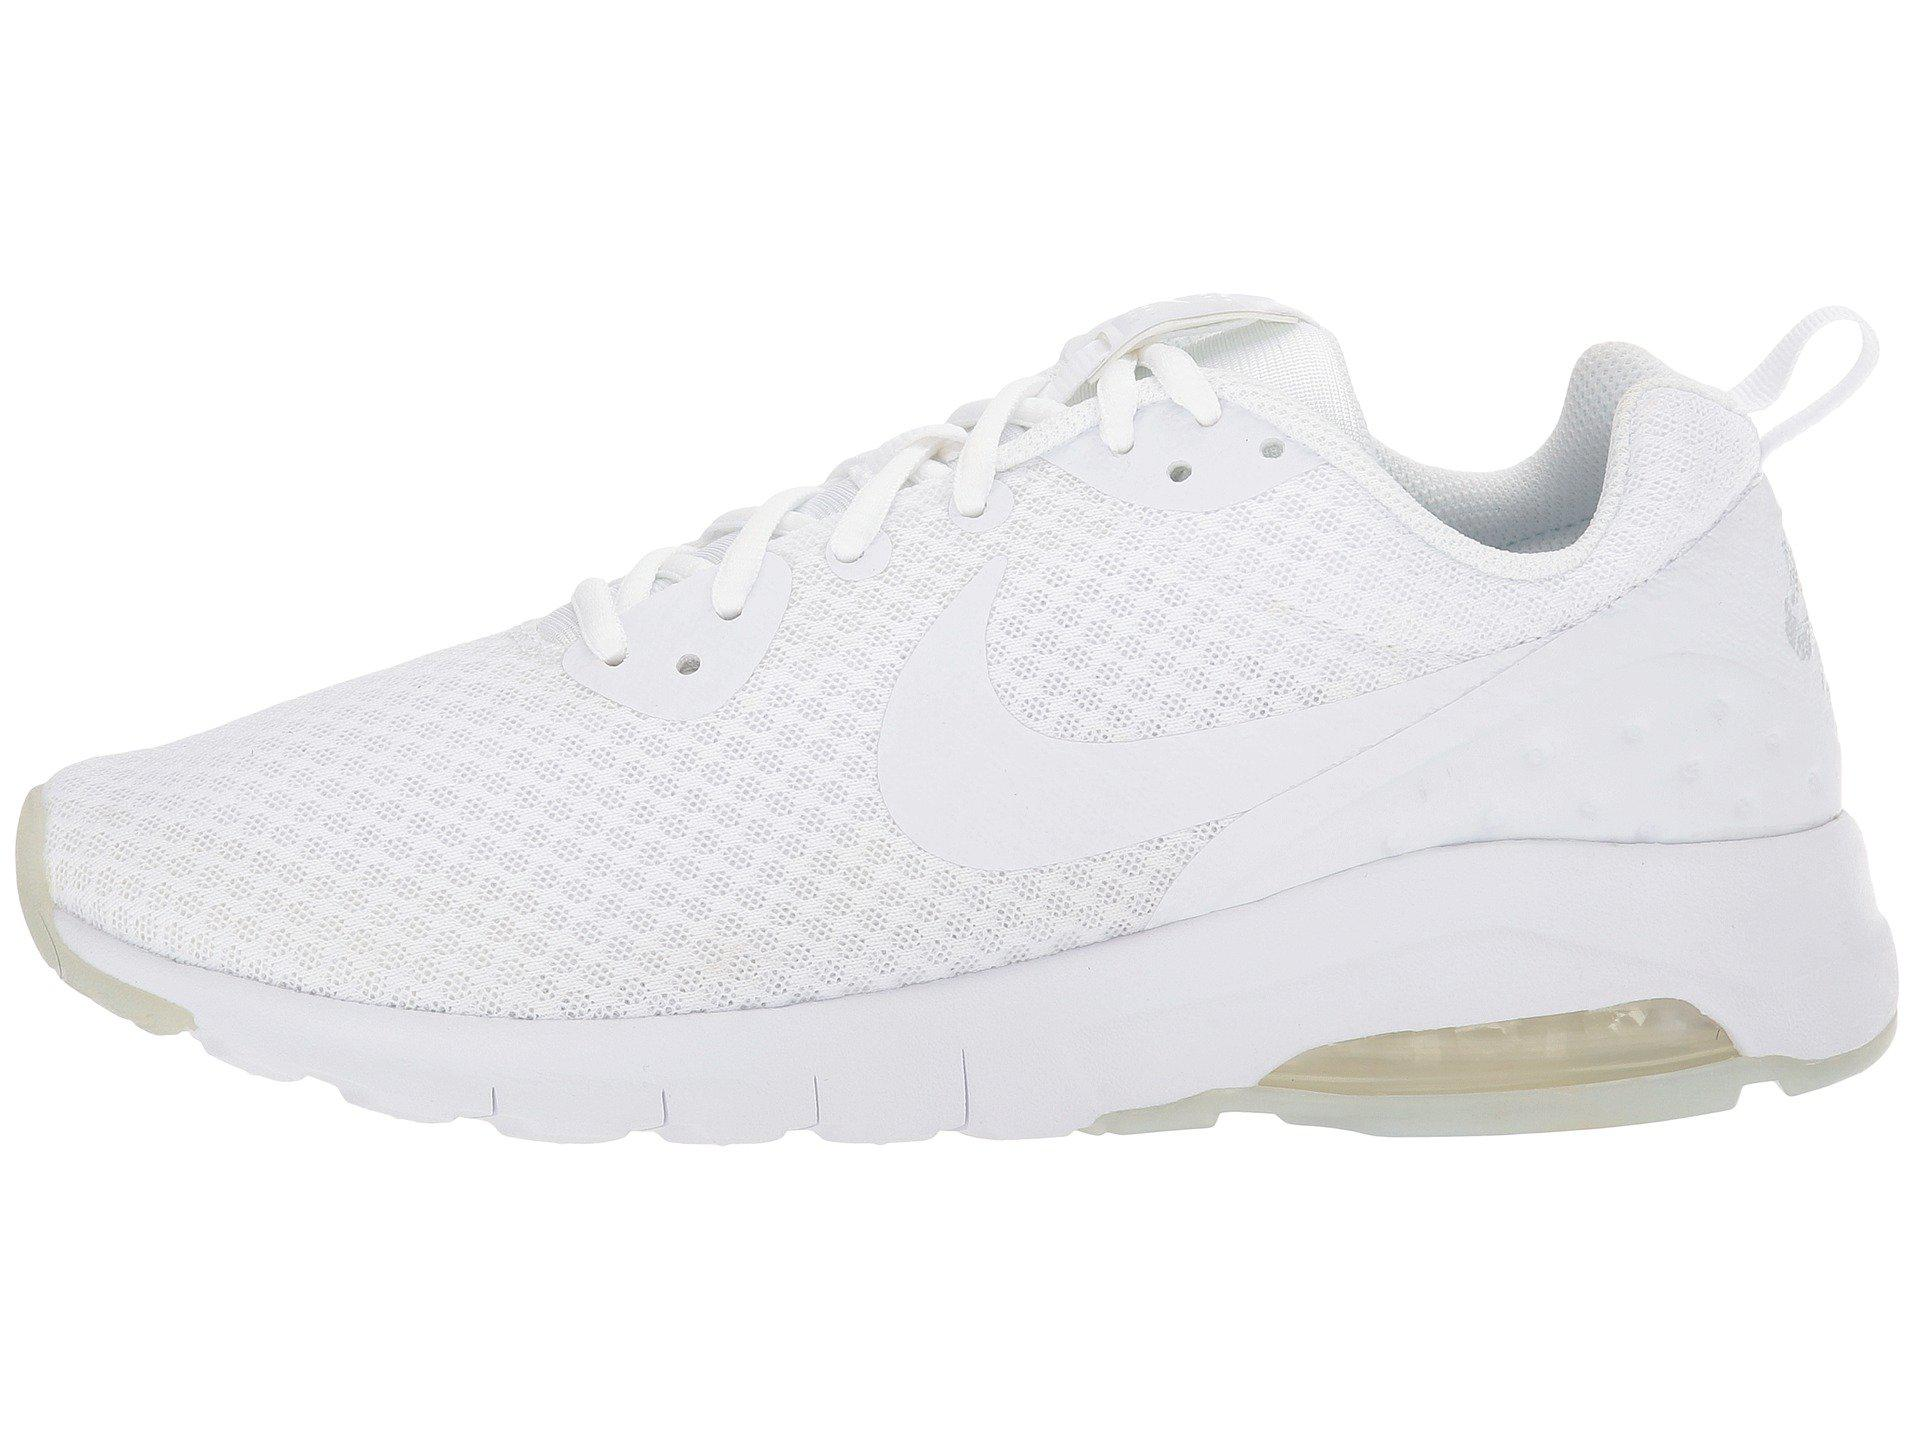 Air Max Motion Lightweight Lw in White